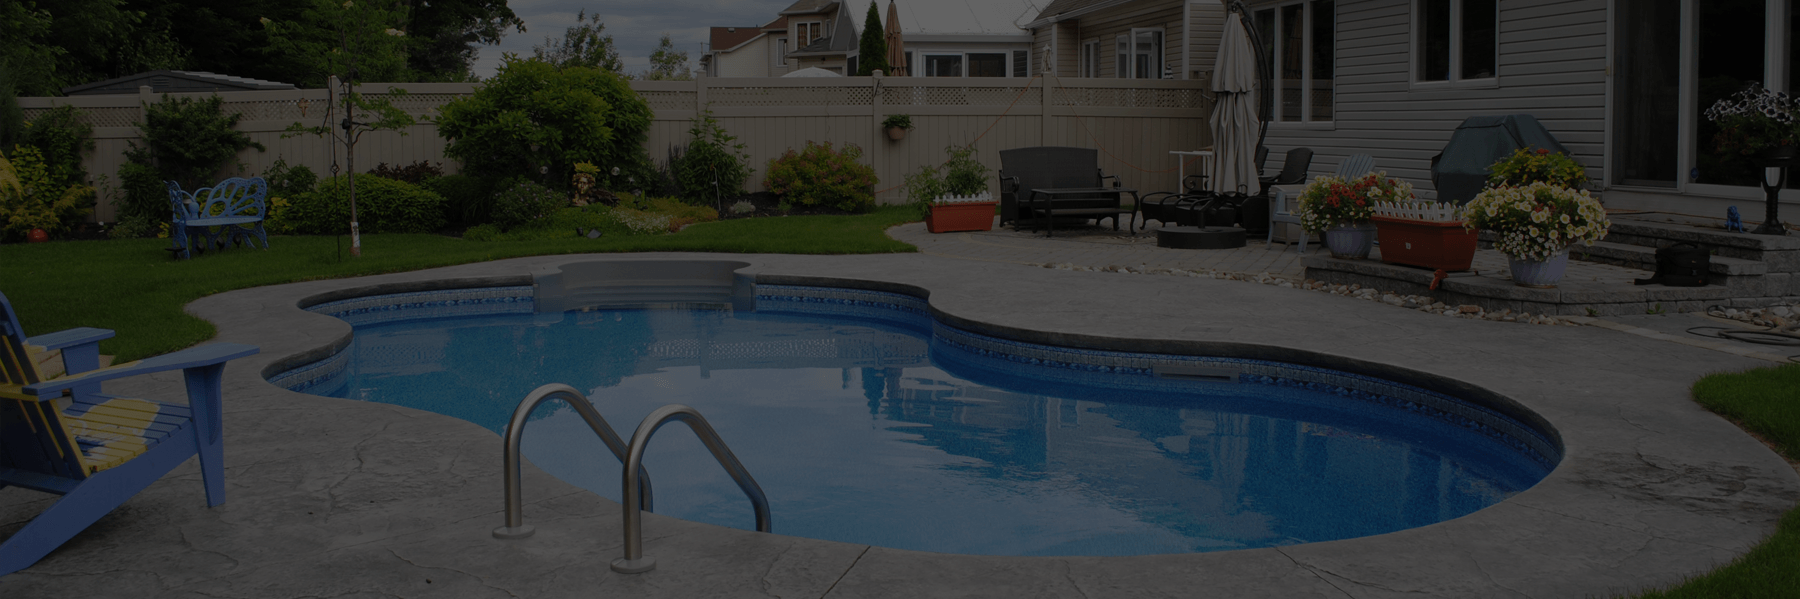 Ottawa backyard featuring kidney shaped swimming pool - dark overlay